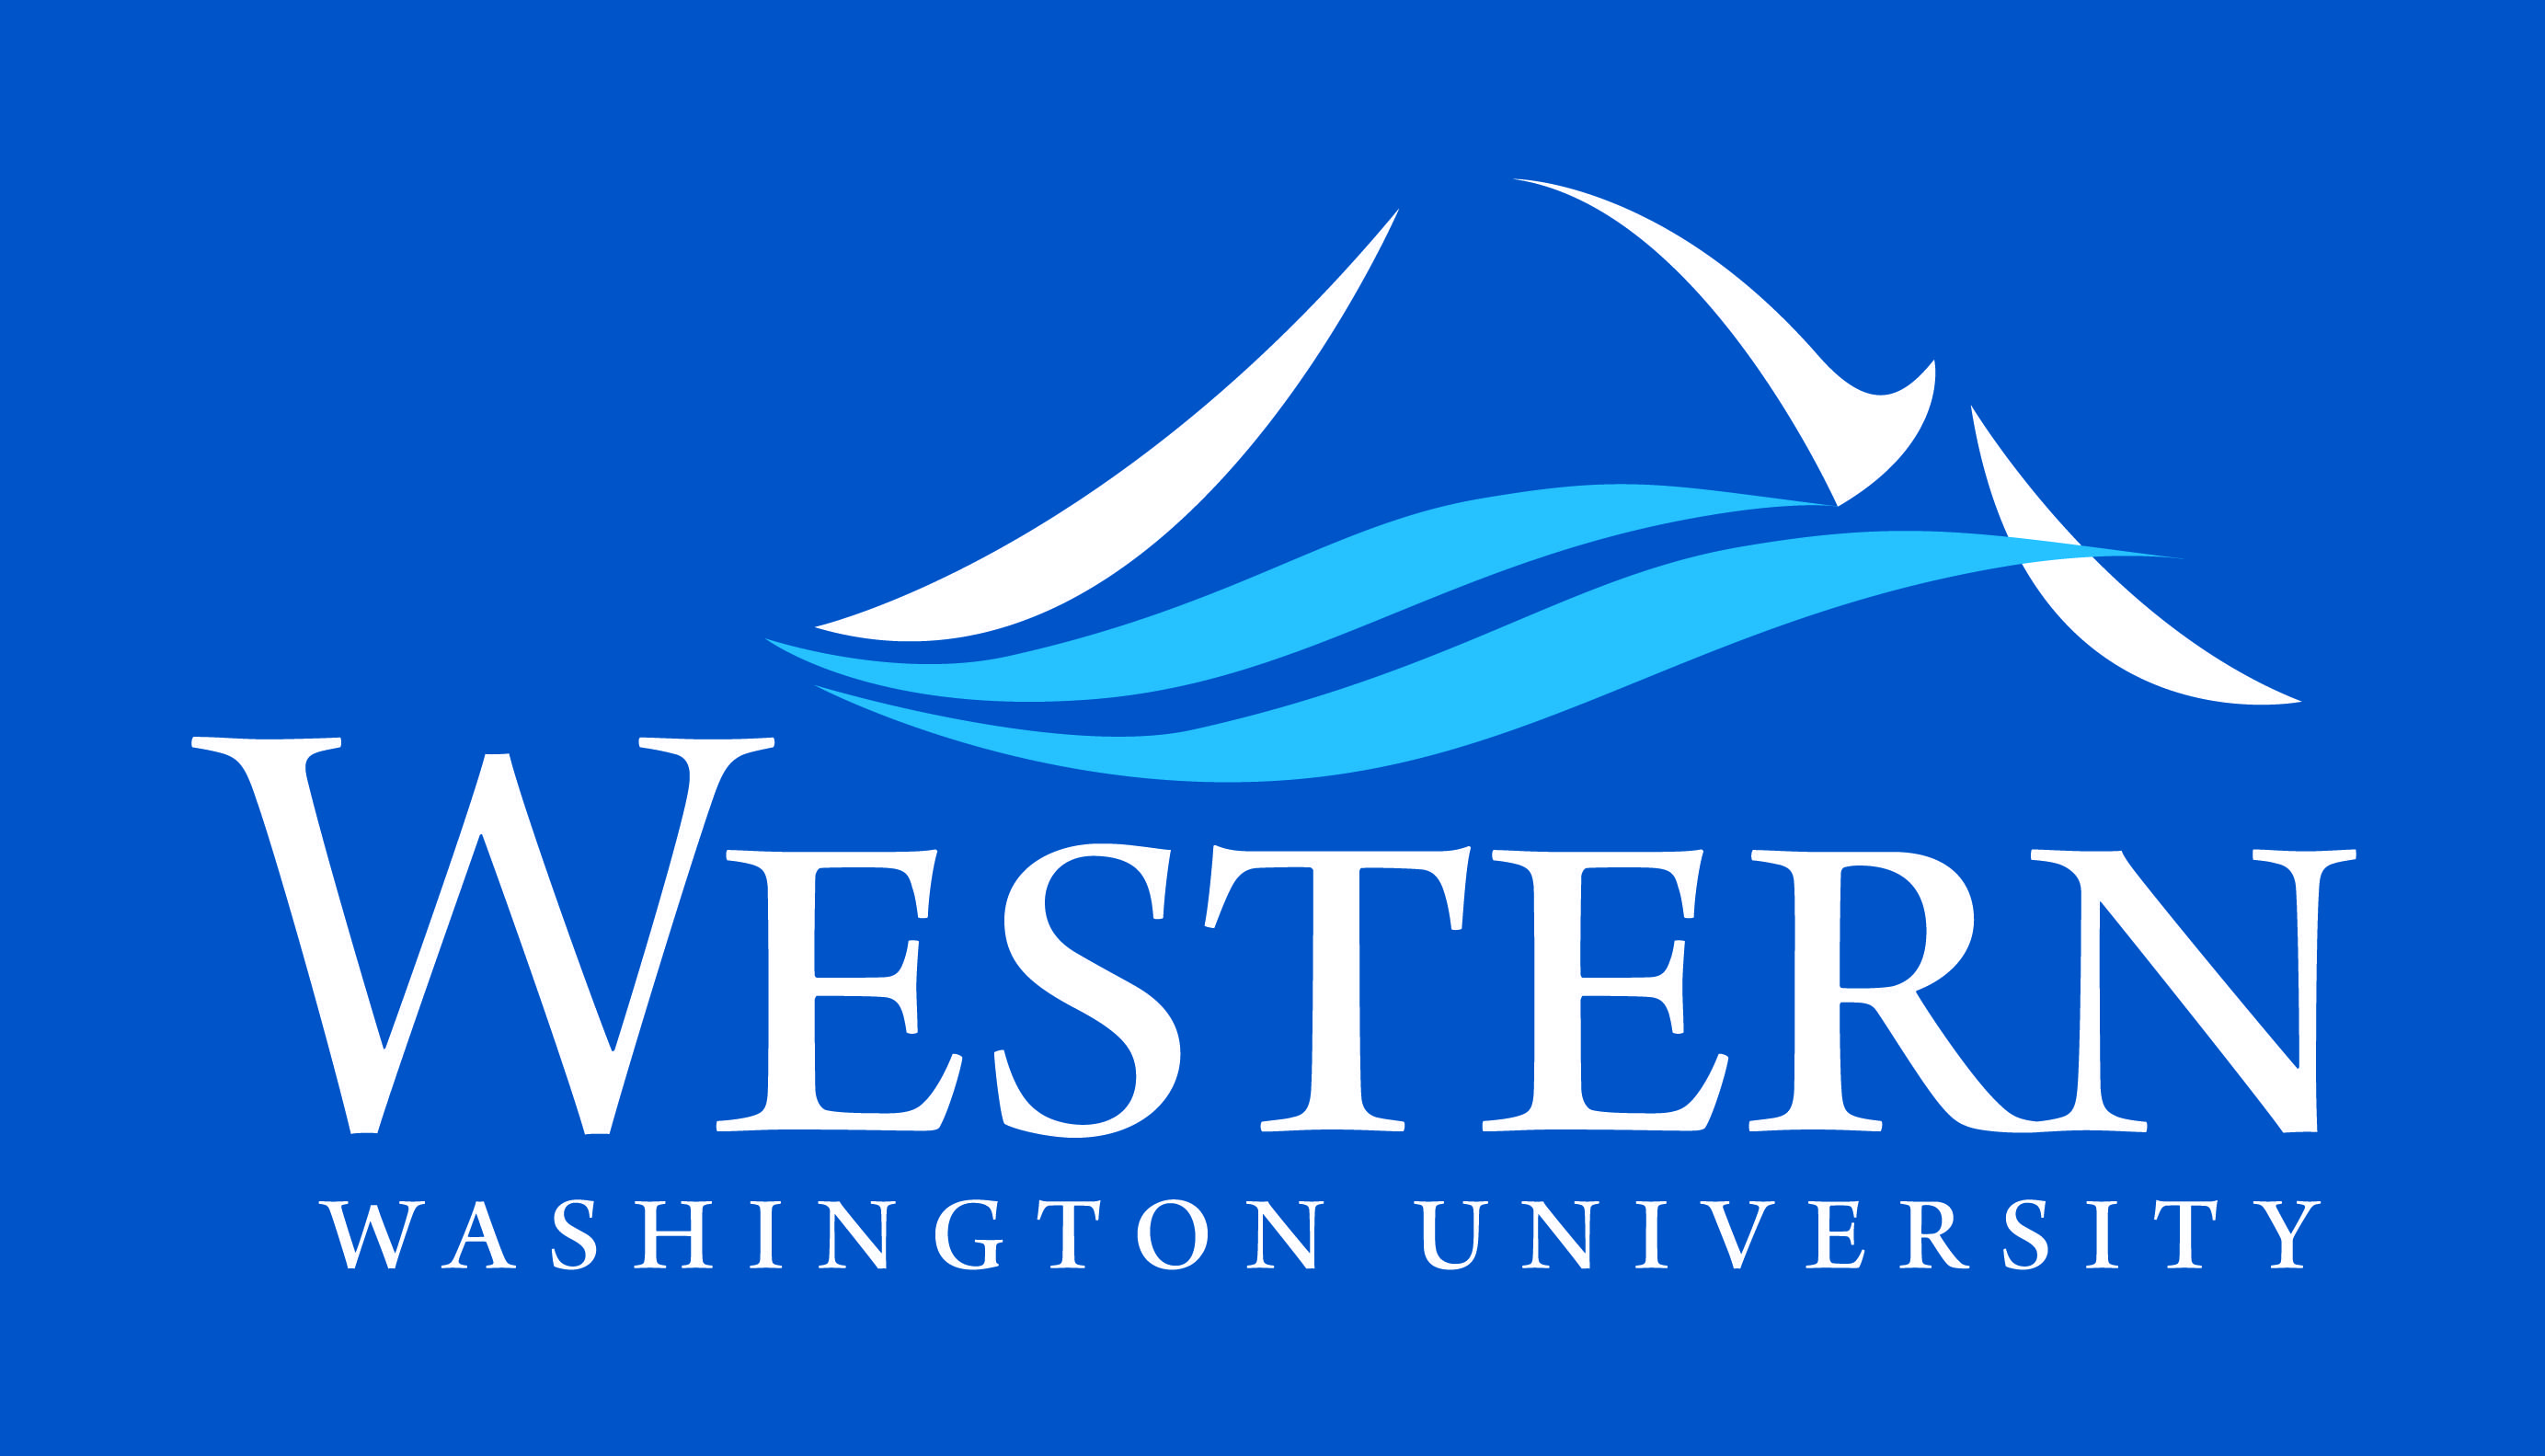 alt - США, Western Washington University, WWU, Бакалавриат,Магистратура, 1